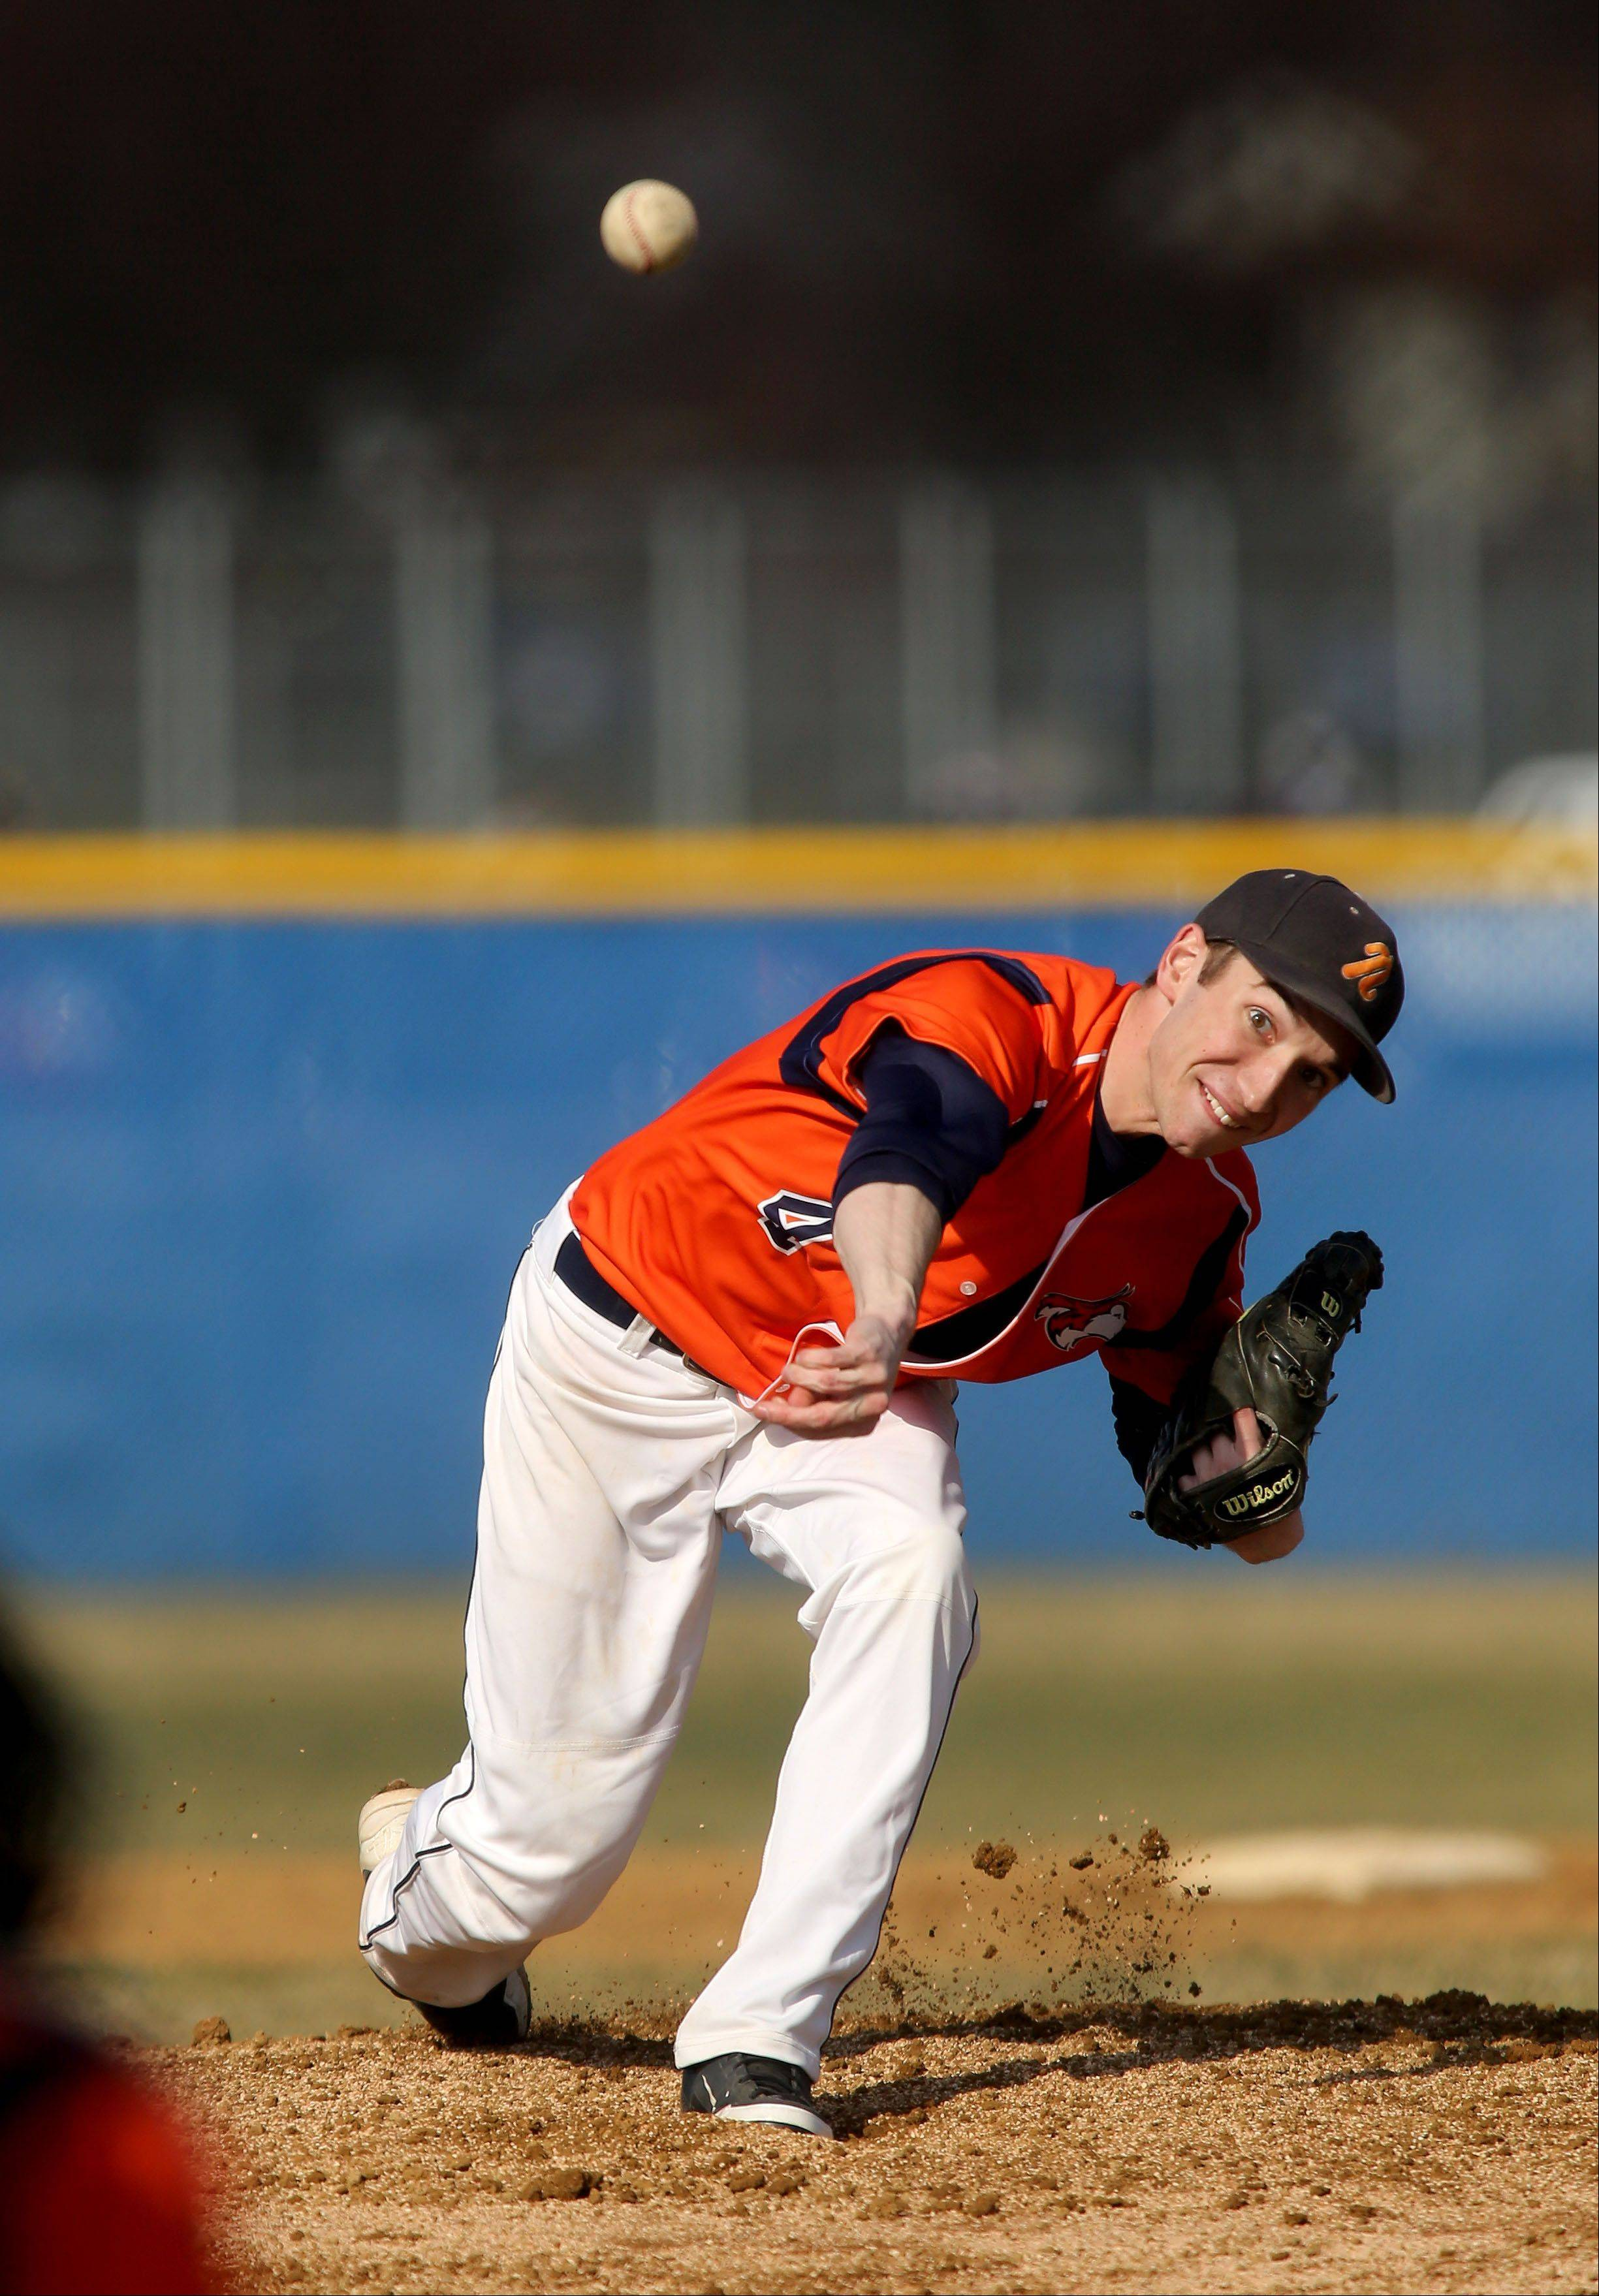 Colin Ash of Naperville North is on the mound against Wheaton North during baseball on Monday in Naperville.